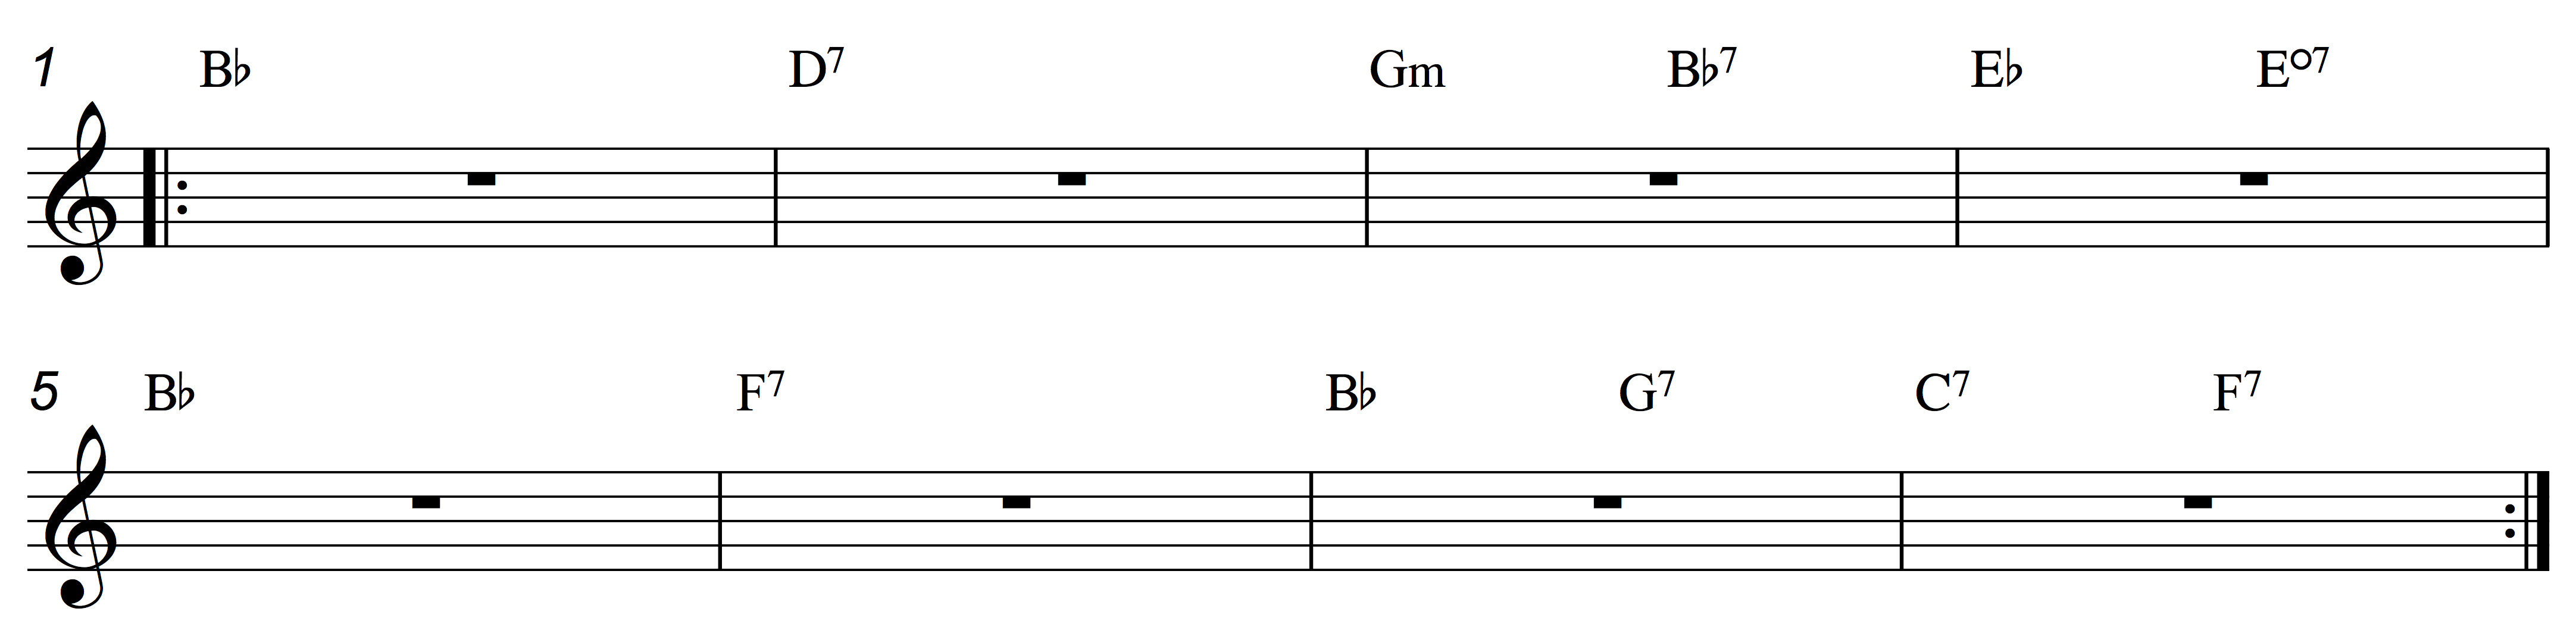 The blues sequence can also have a length of 8 bars.